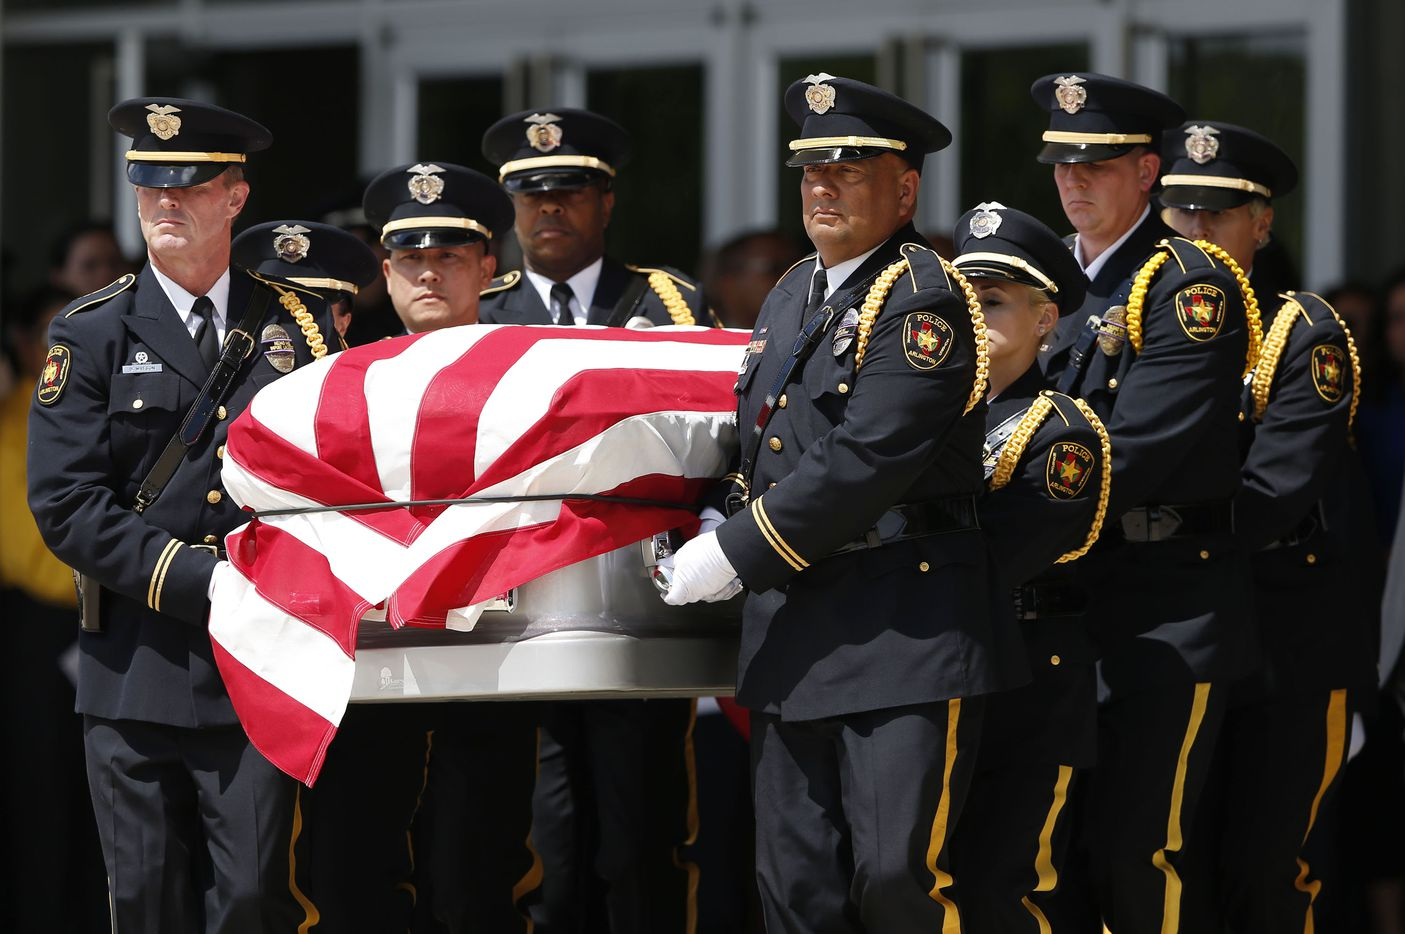 Arlington Honor Guard carry DART Officer Brent Thompson outside during a memorial service at The Potter's House in Dallas on Wednesday, July 13, 2016. Thompson was one of five officers killed last week when a gunman opened fire during a Black Lives Matter rally in downtown Dallas.